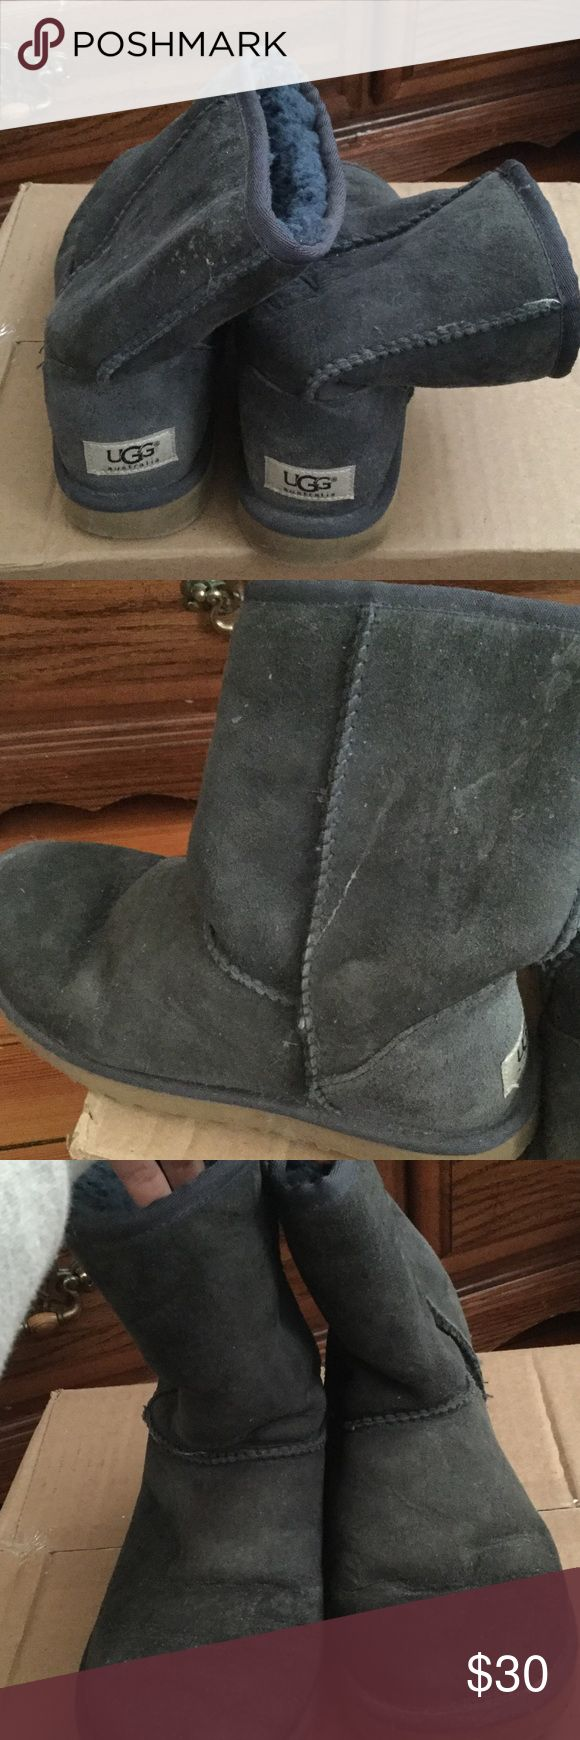 USEDDD navy blue UGGS! 30$ or best offer! USEDDD condition! Lots of creases and stains! UGG Shoes Winter & Rain Boots